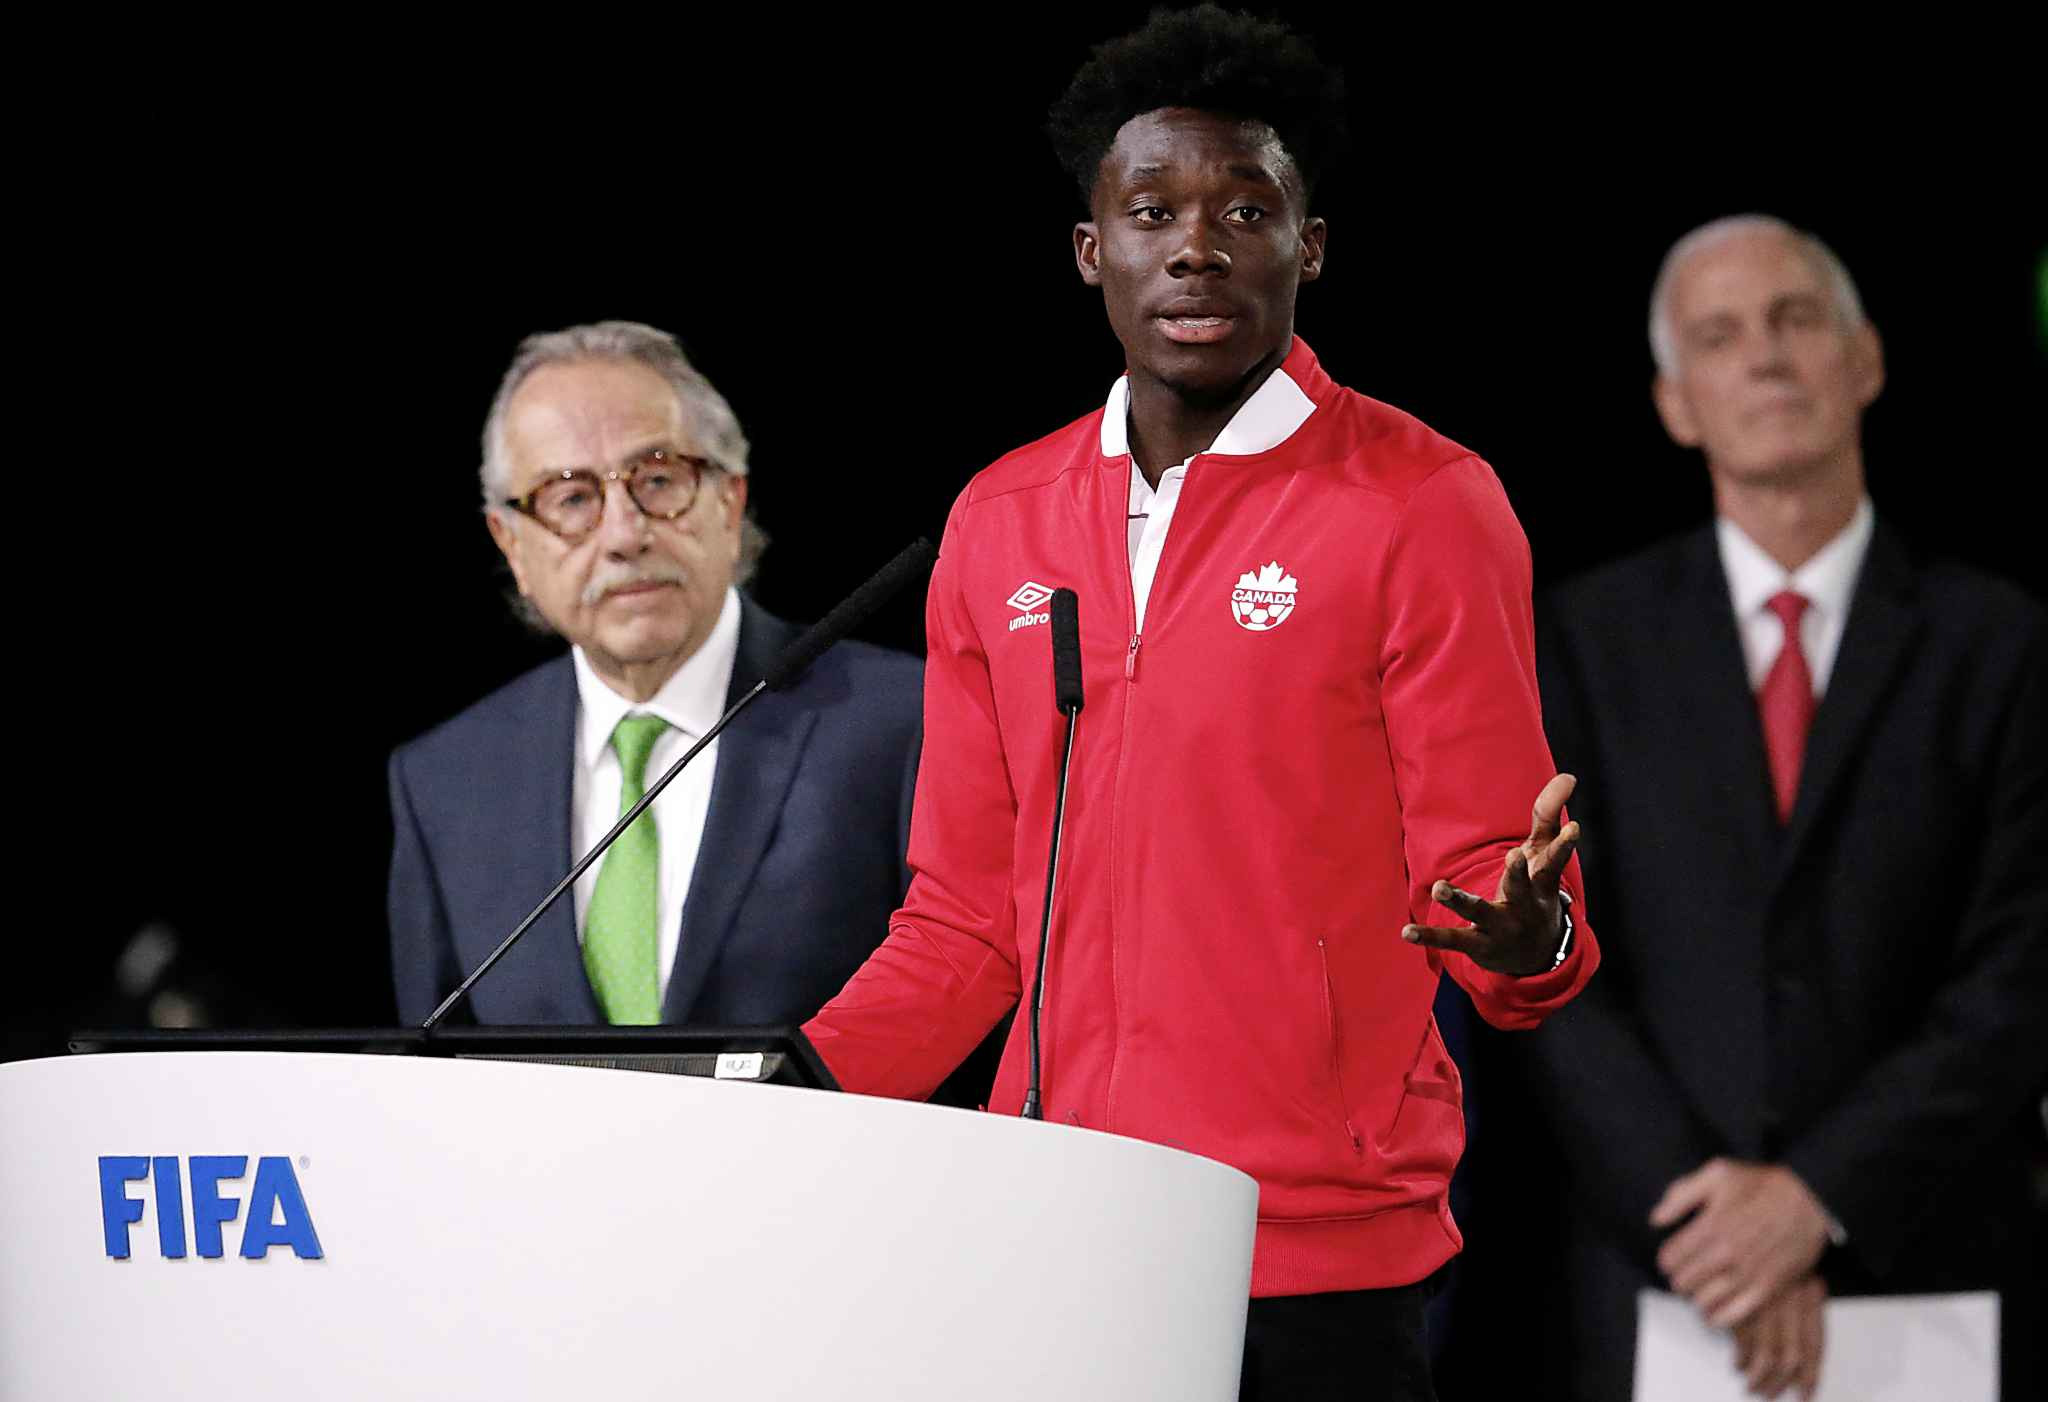 Alphonso Davies of Canada speaks at the FIFA congress. (Alexander Zemlianichenko / The Associated Press)